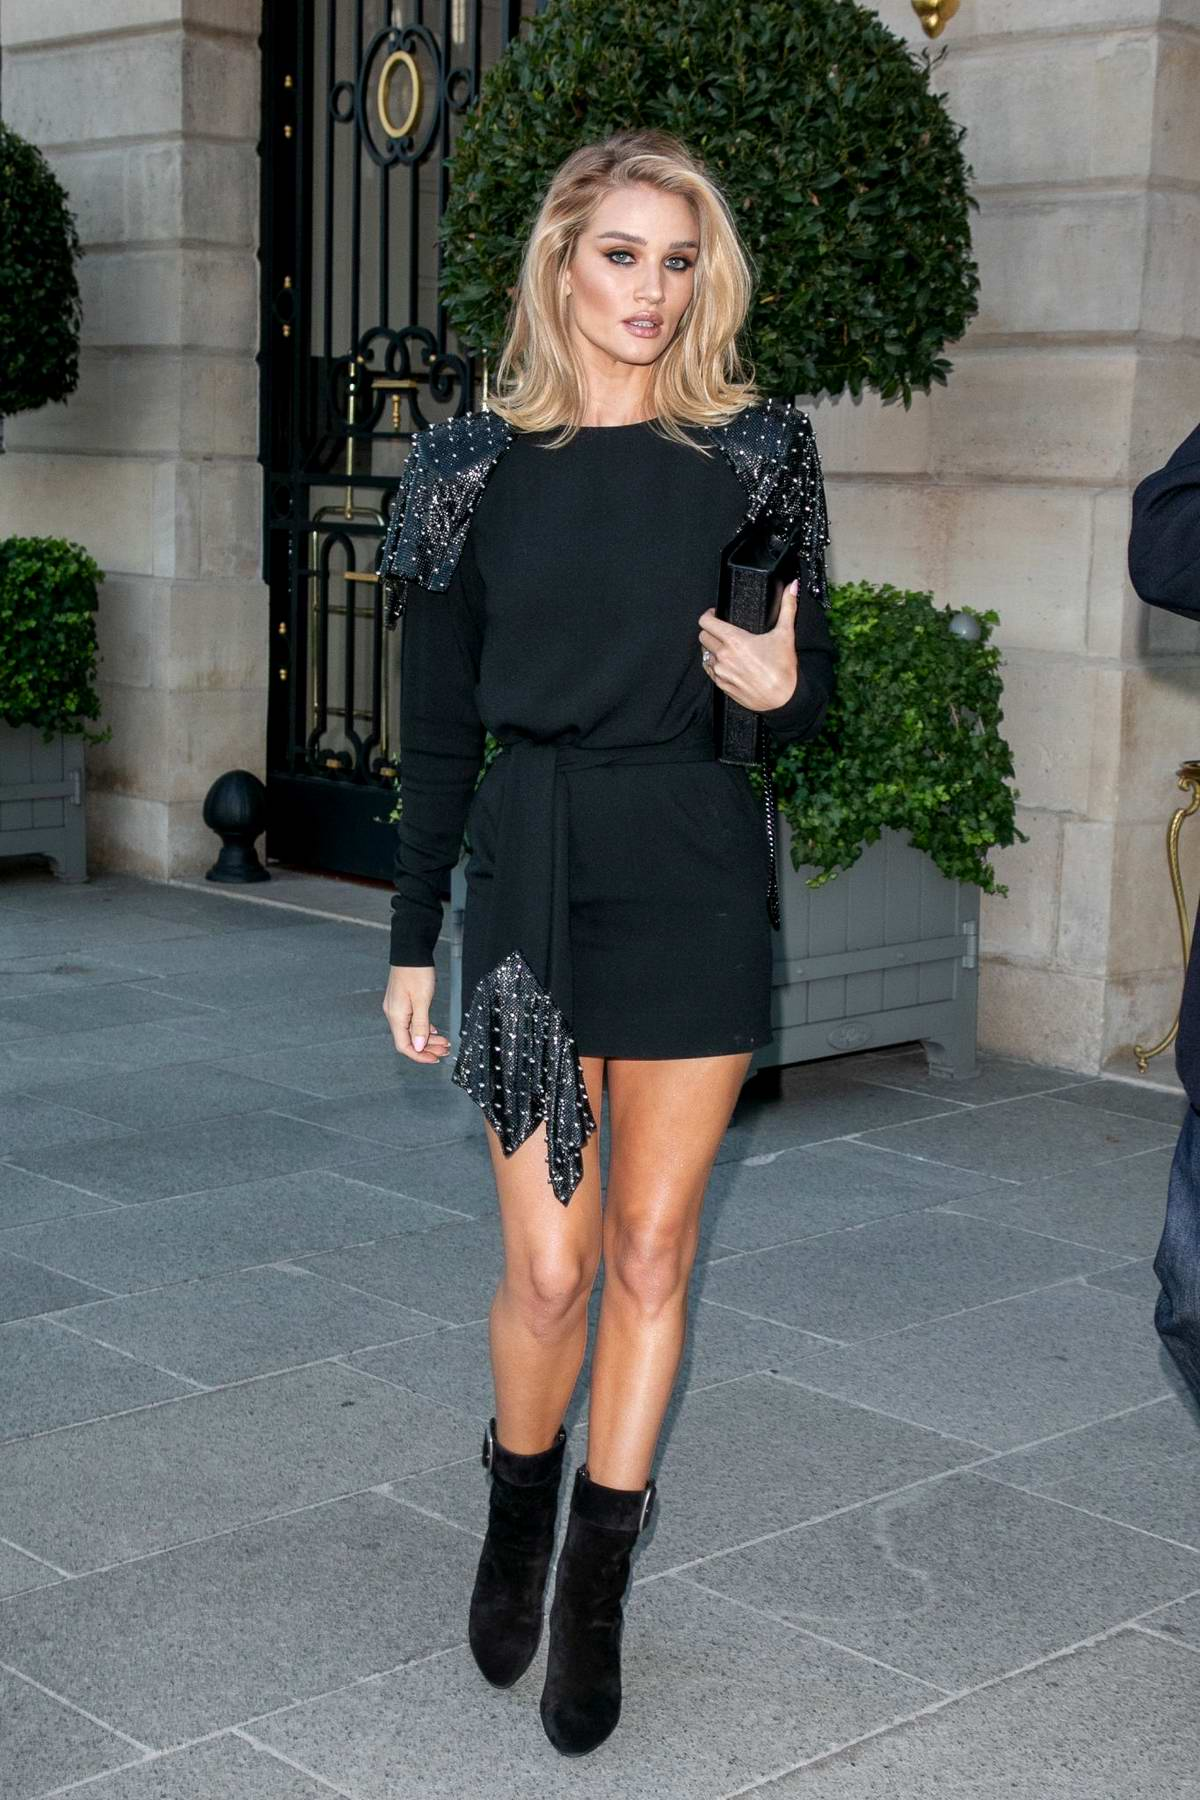 Rosie Huntington-Whiteley looks stunning in a short black dress as she leaves The Ritz Hotel in Paris, France